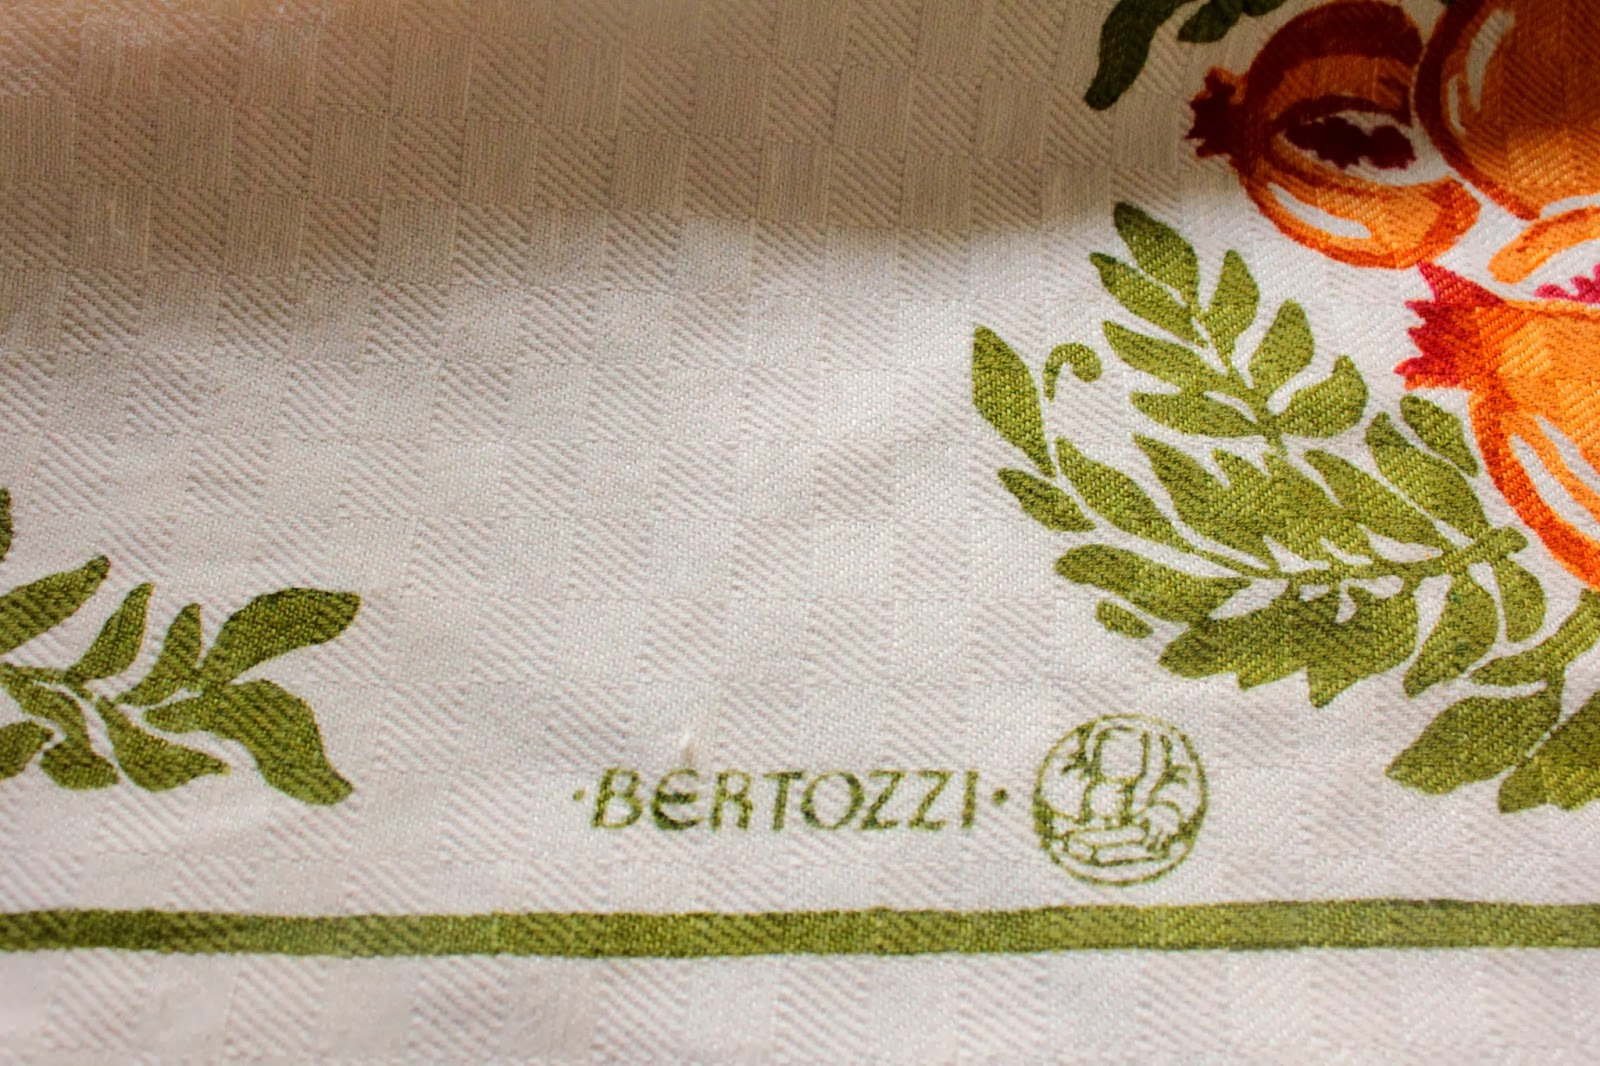 The Linens Are Made Near Siena Where I Vacationed By The Bertozzi Family.  They Are Hand Stamped By Original Hand Carved Wooden Molds.